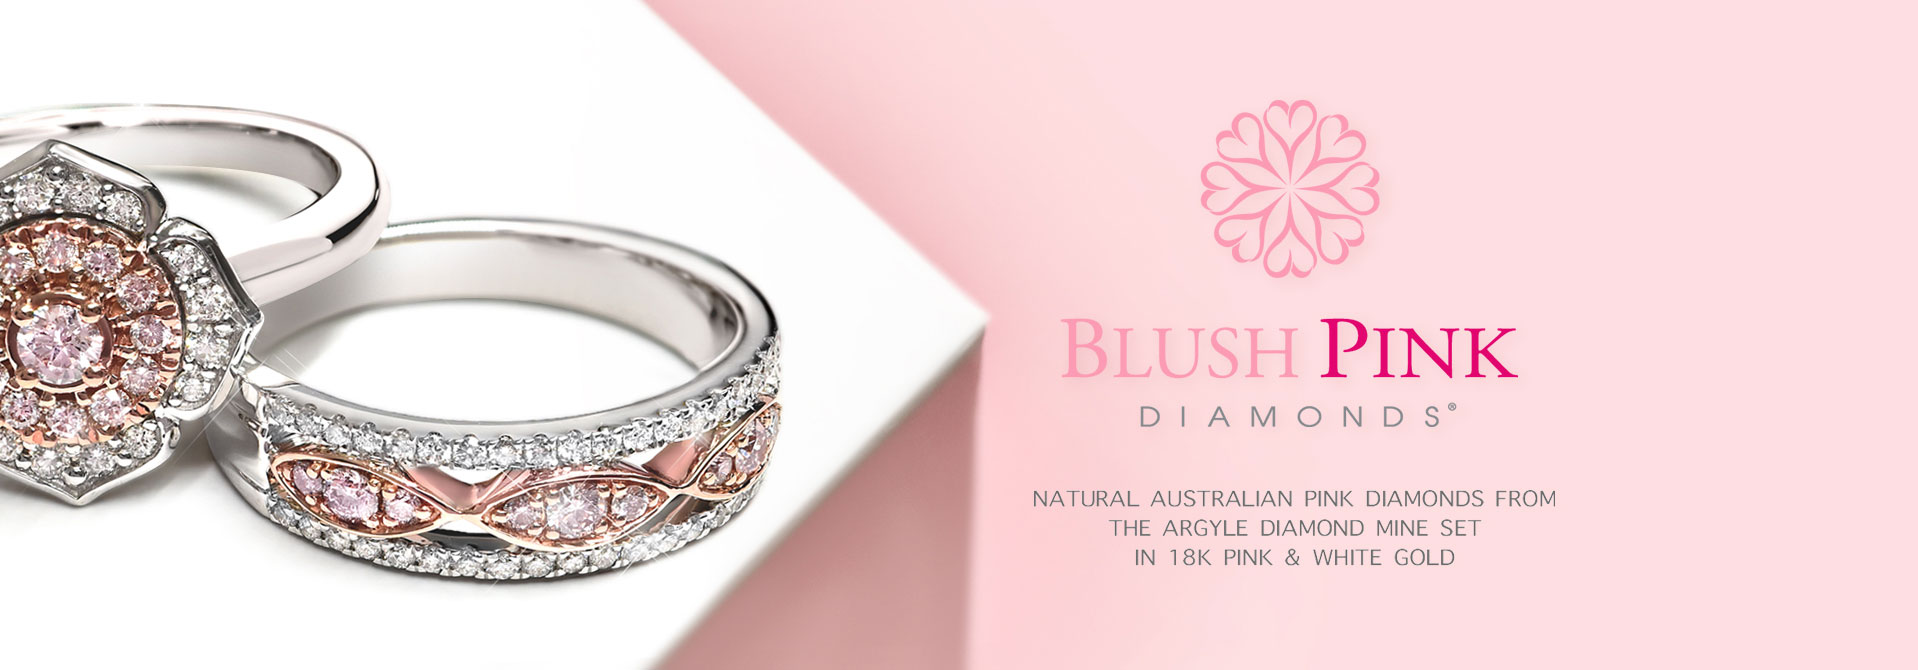 Blush Pink Diamonds fro the Argyle diamond mine set in 18K pink and white gold